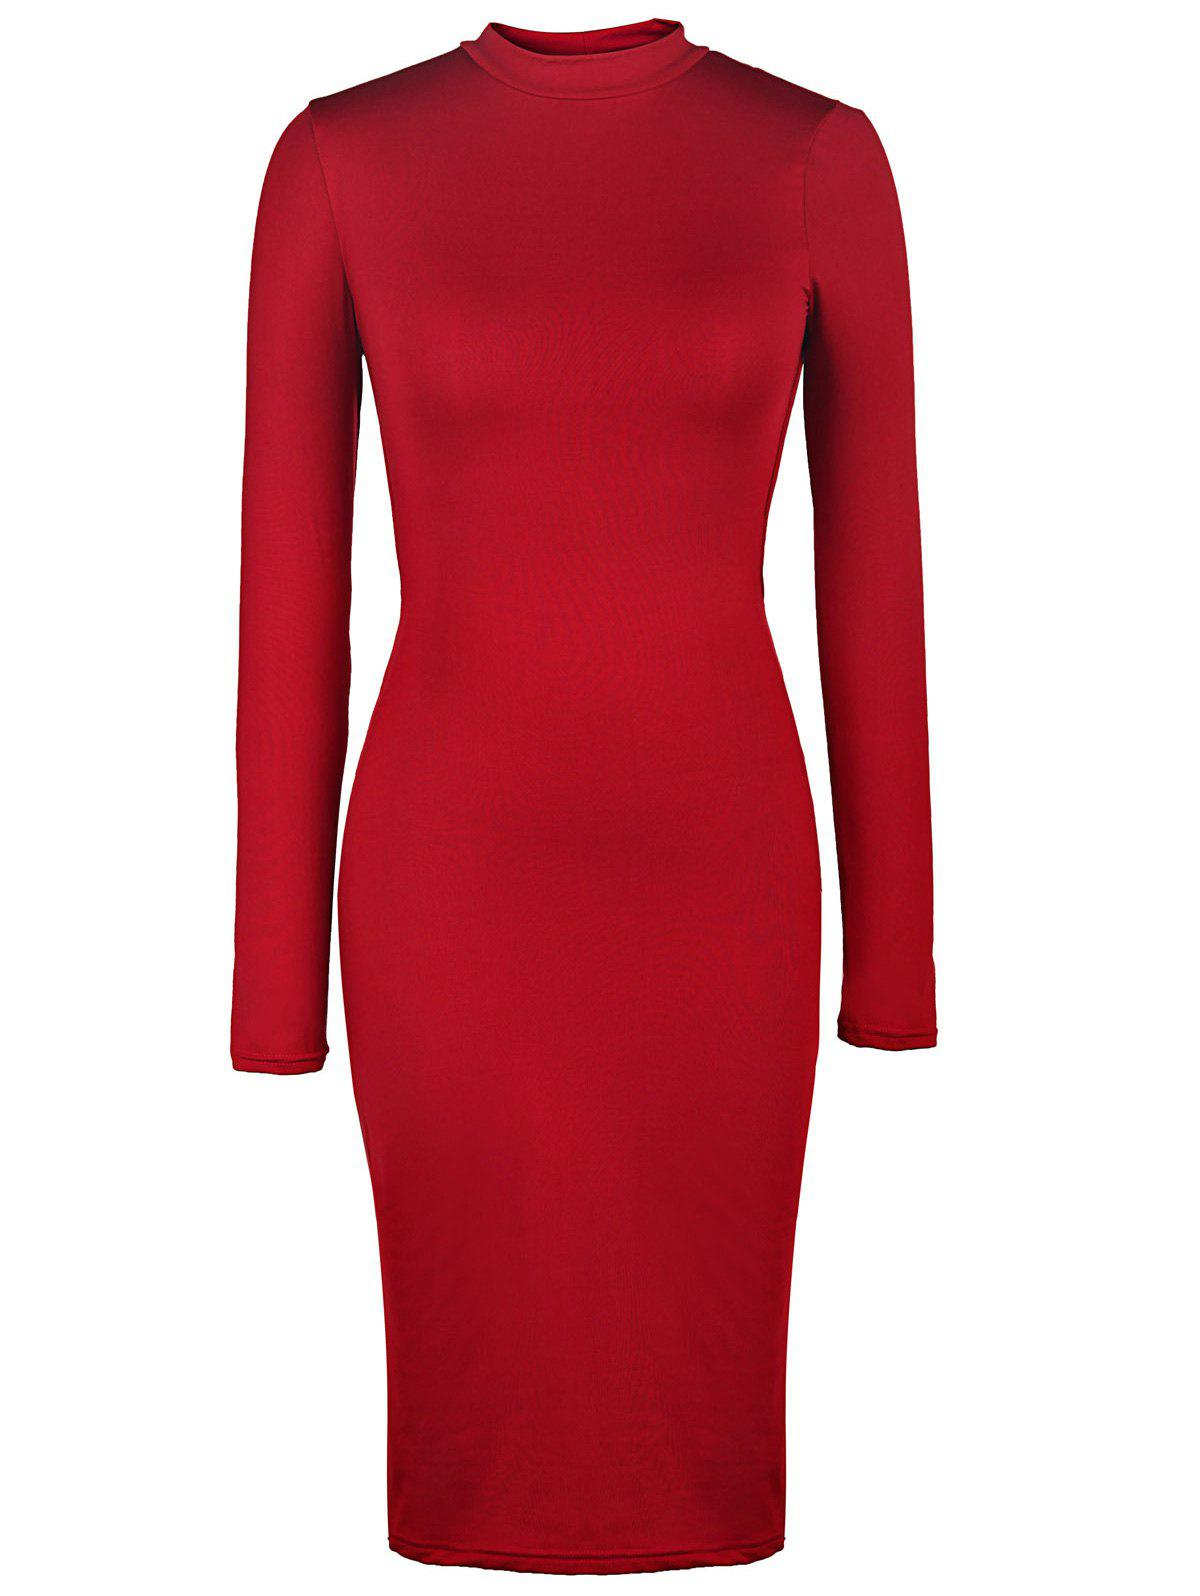 Charming Back Plaid Hollow Out Solid Color Long Sleeve Bodycon Dress For WomenWomen<br><br><br>Size: S<br>Color: WINE RED